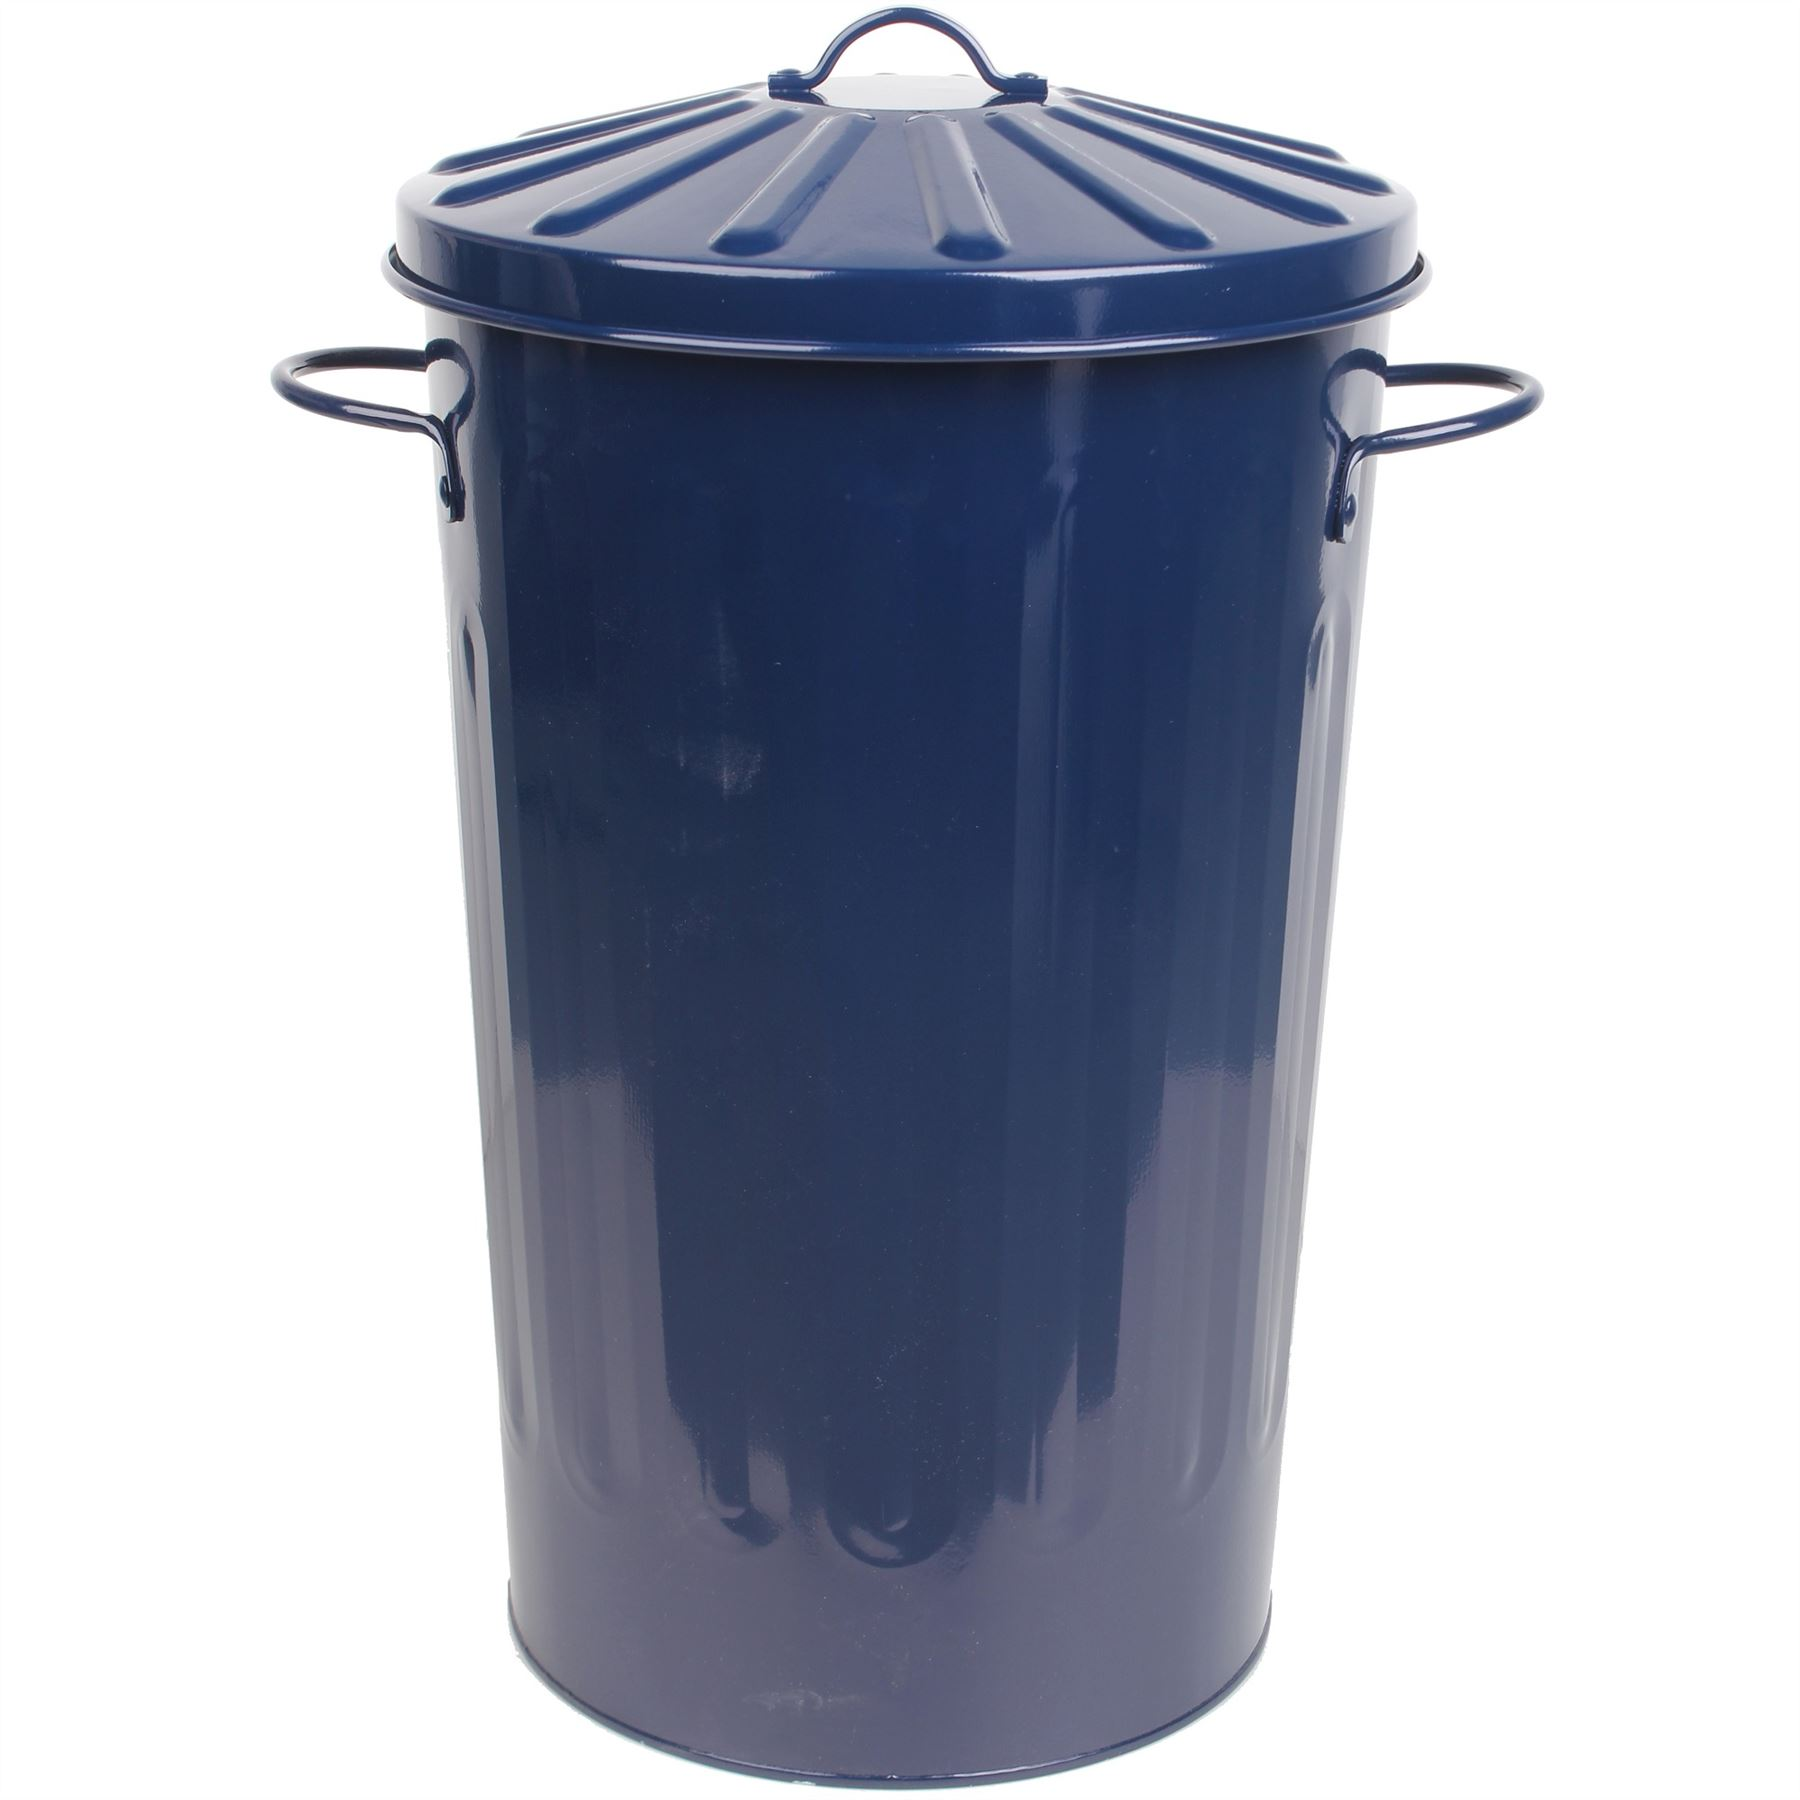 Small Metal Trash Cans With Lids Metal 18 Litre Small Colour Recycle Dustbin Paper Rubbish